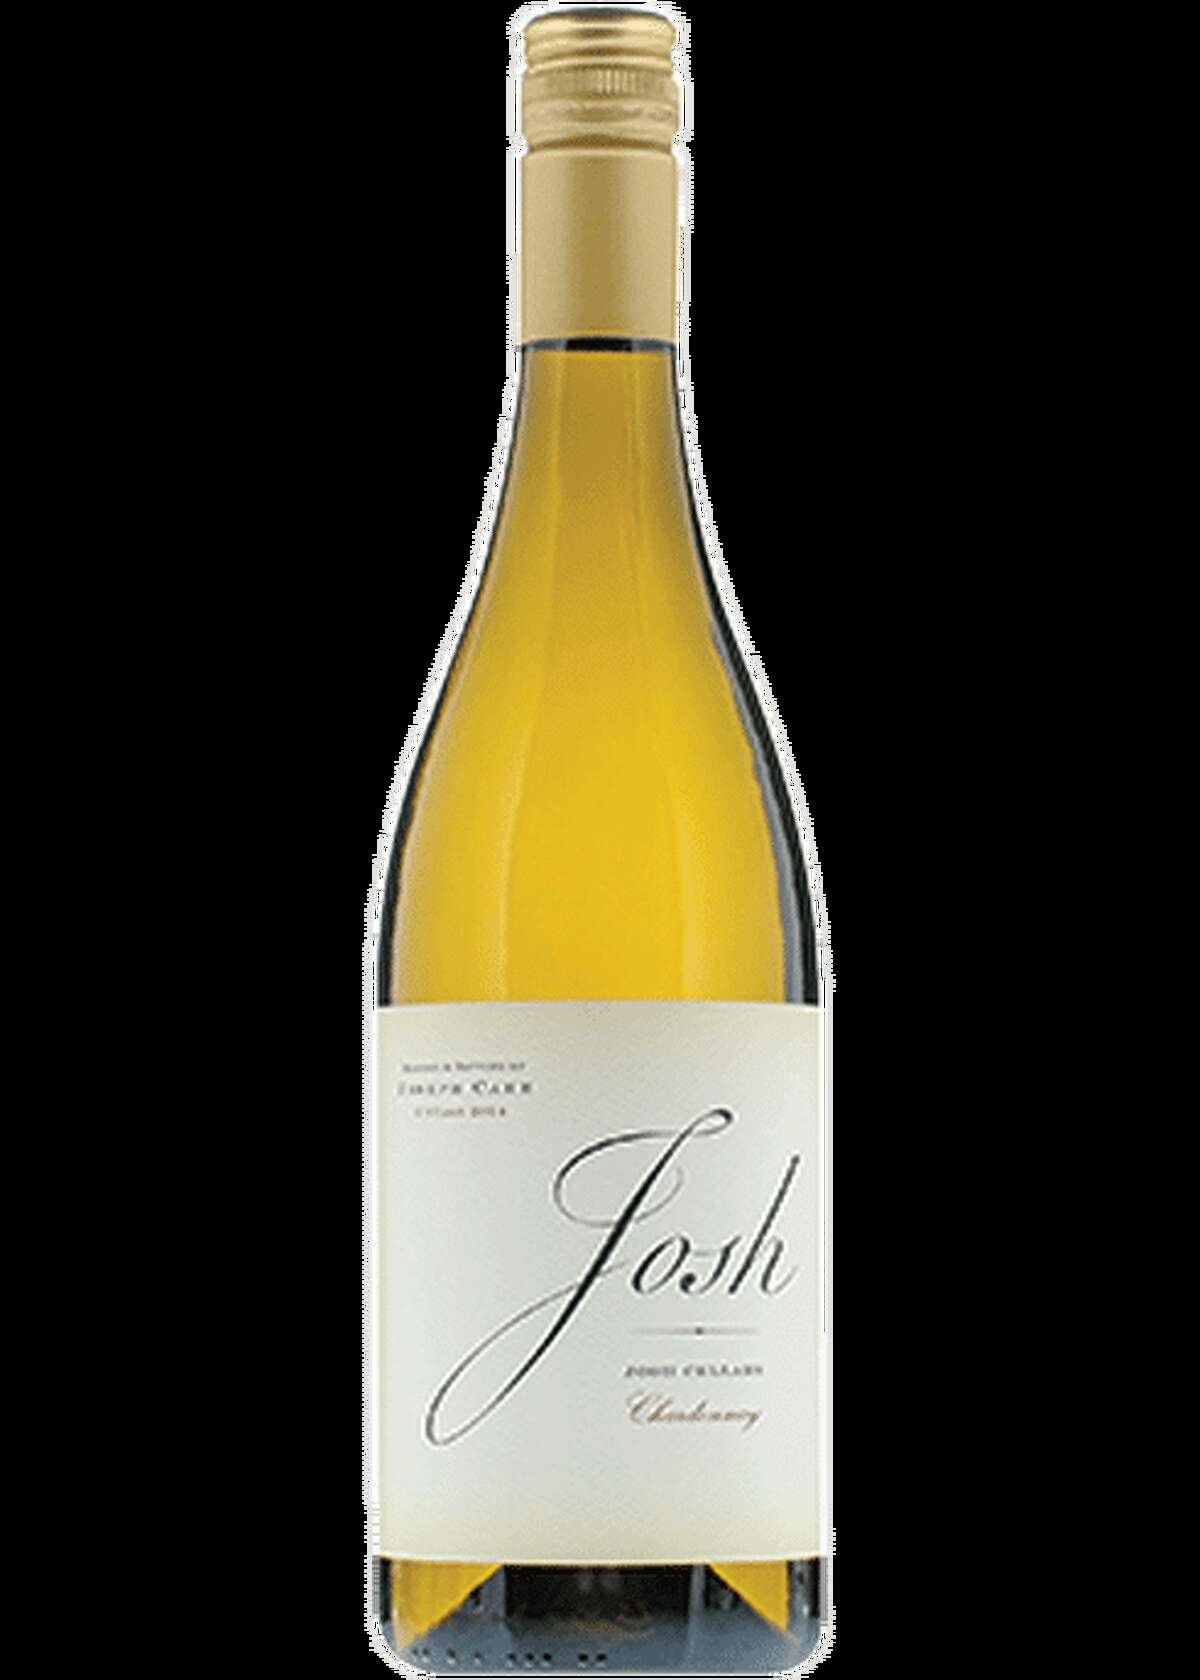 2) Josh Cellars Chardonnay: $10.97 Shop Now This bright chardonnay with peachy notes is said to have a crème brûlée finish by experts who can allegedly detect such things. Either way, it's tasty.